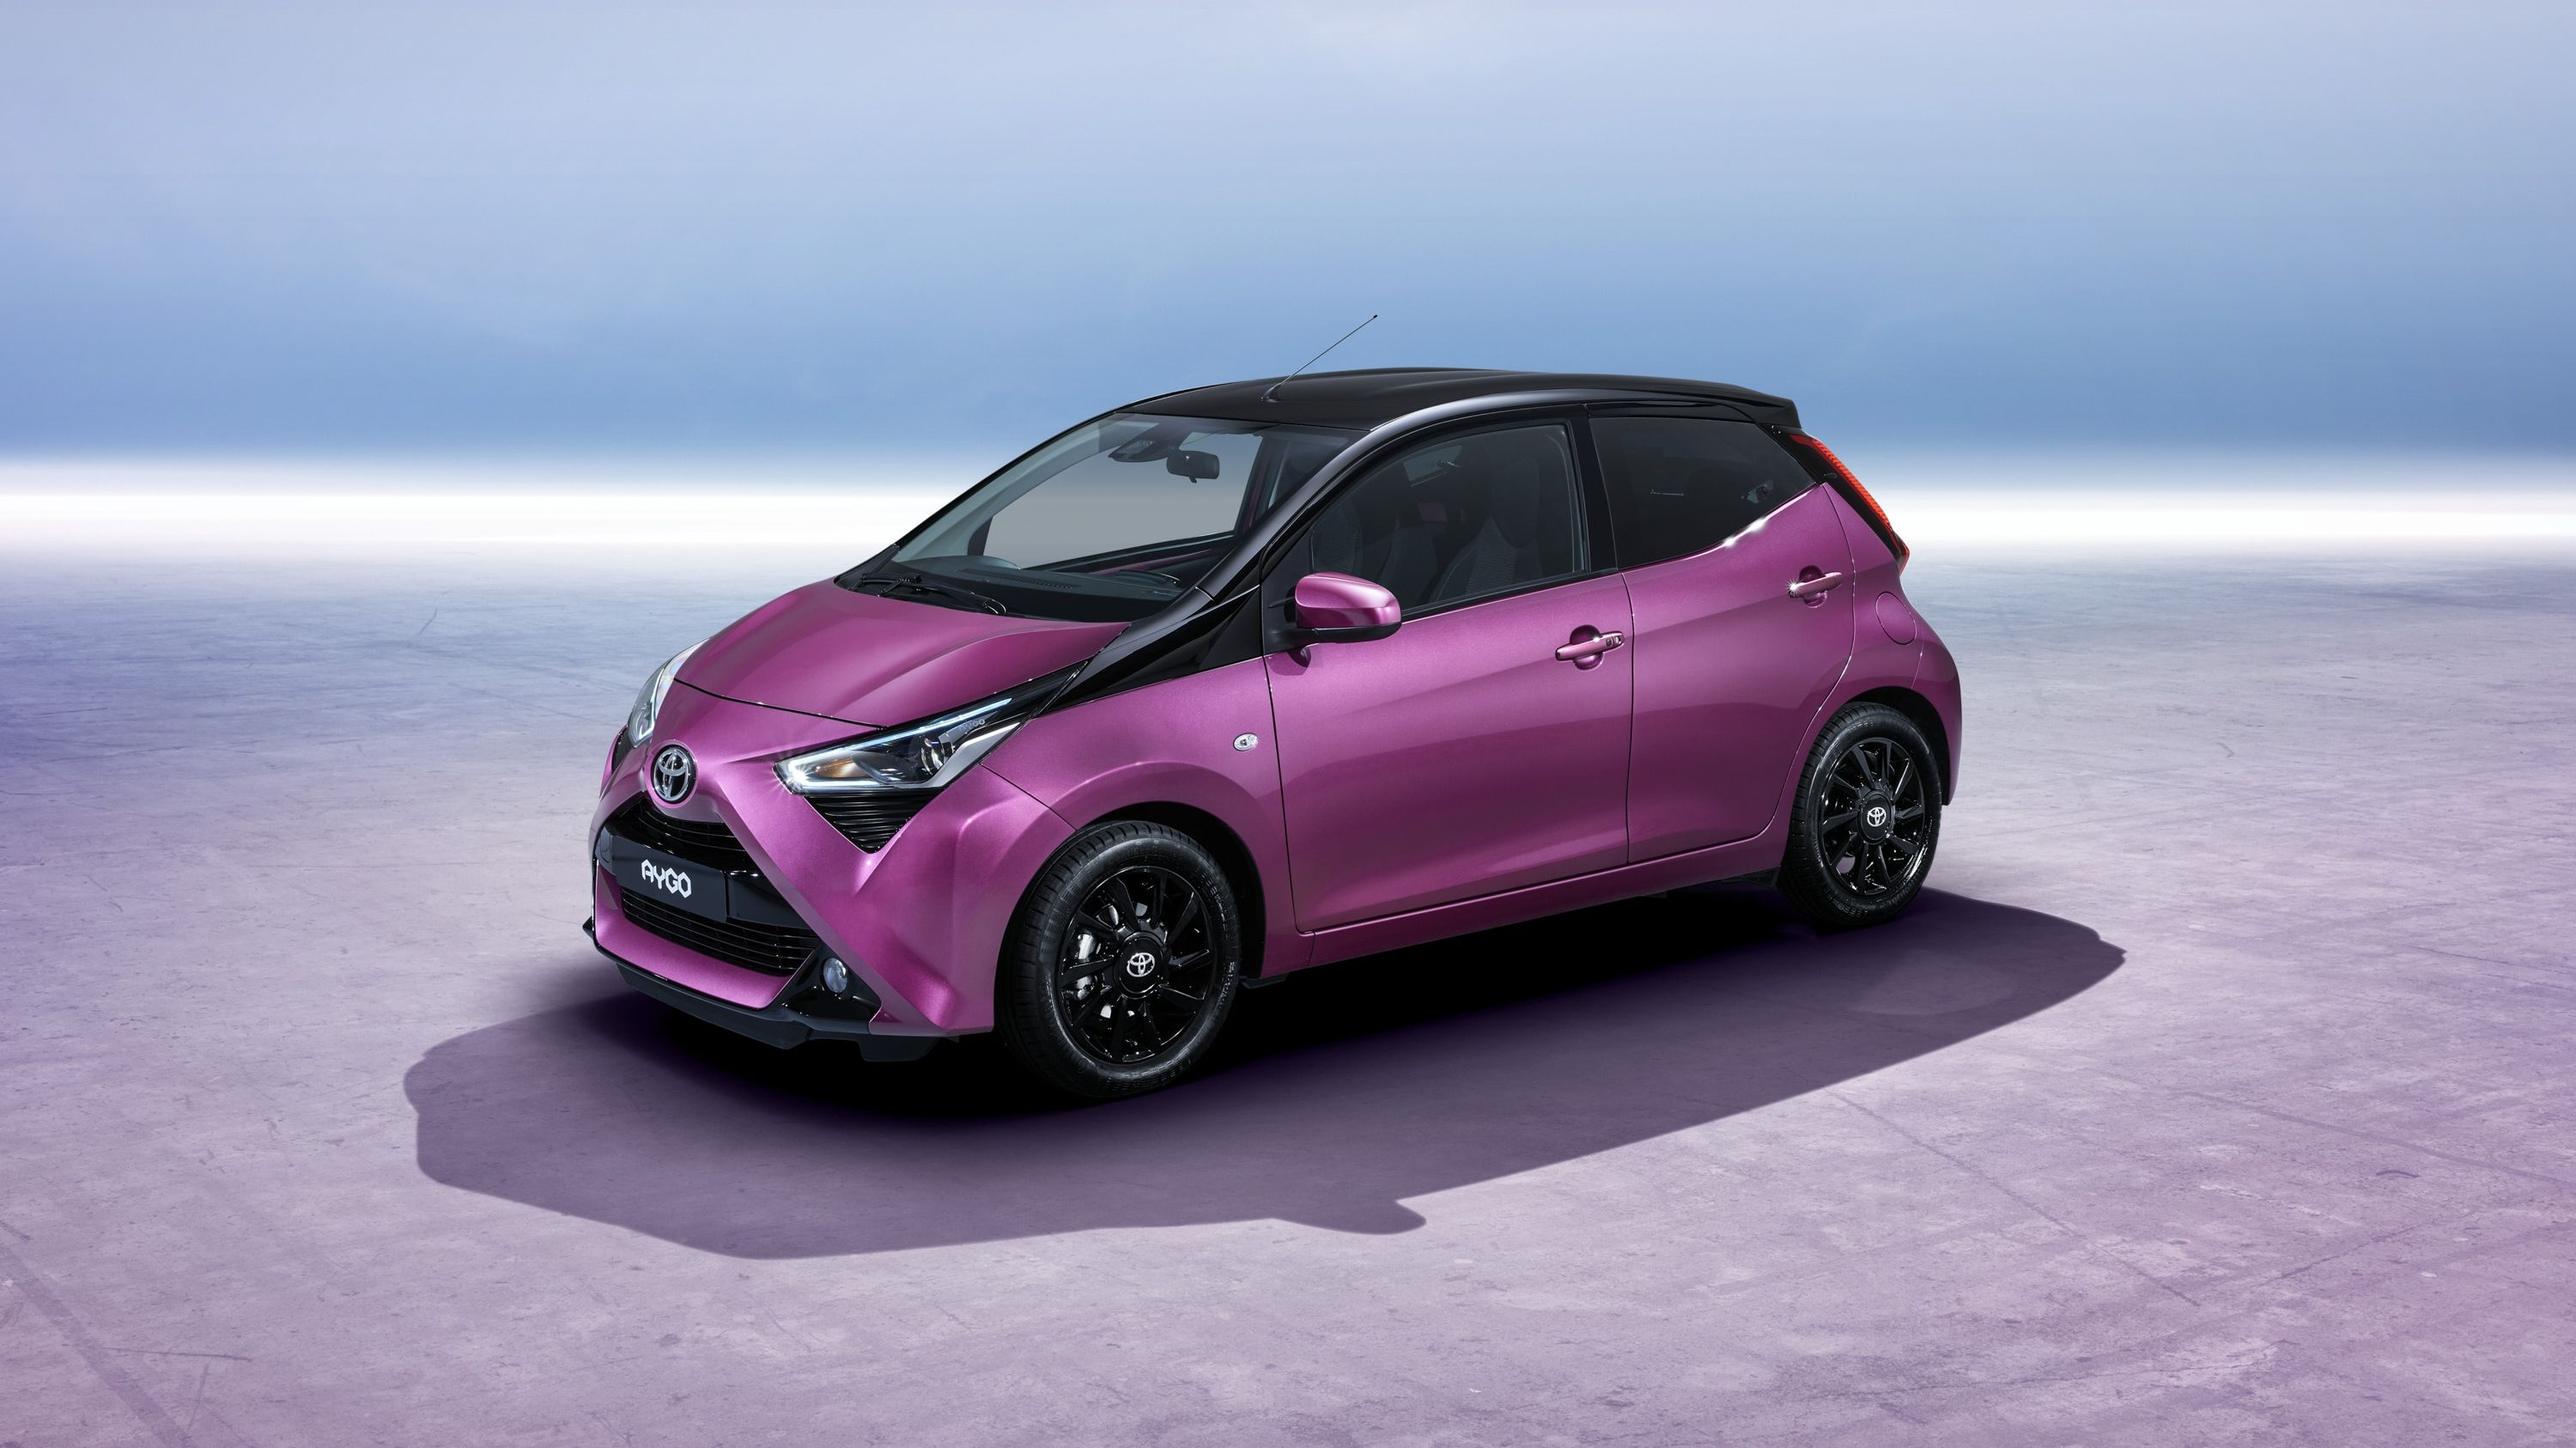 New Toyota Aygo Can Overtake The Vw Up And Hyundai I10 In Europe